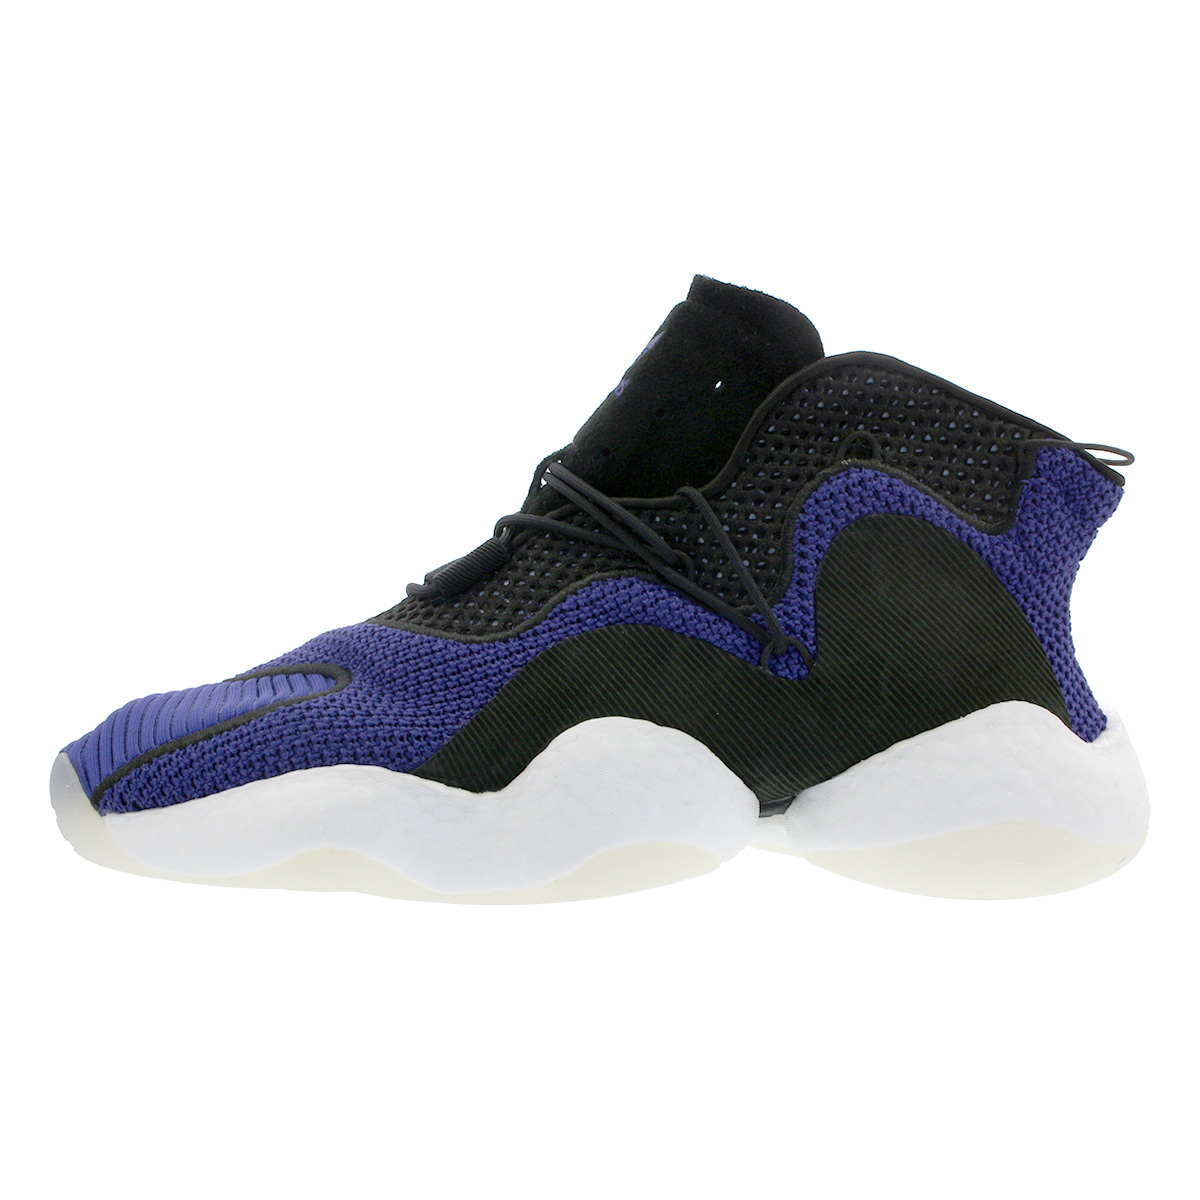 on sale f1ee7 f4110 adidas CRAZY BYW LVL I Adidas crazy BYW LVL I REAL PURPLECORE  BLACKRUNNING WHITE b37550